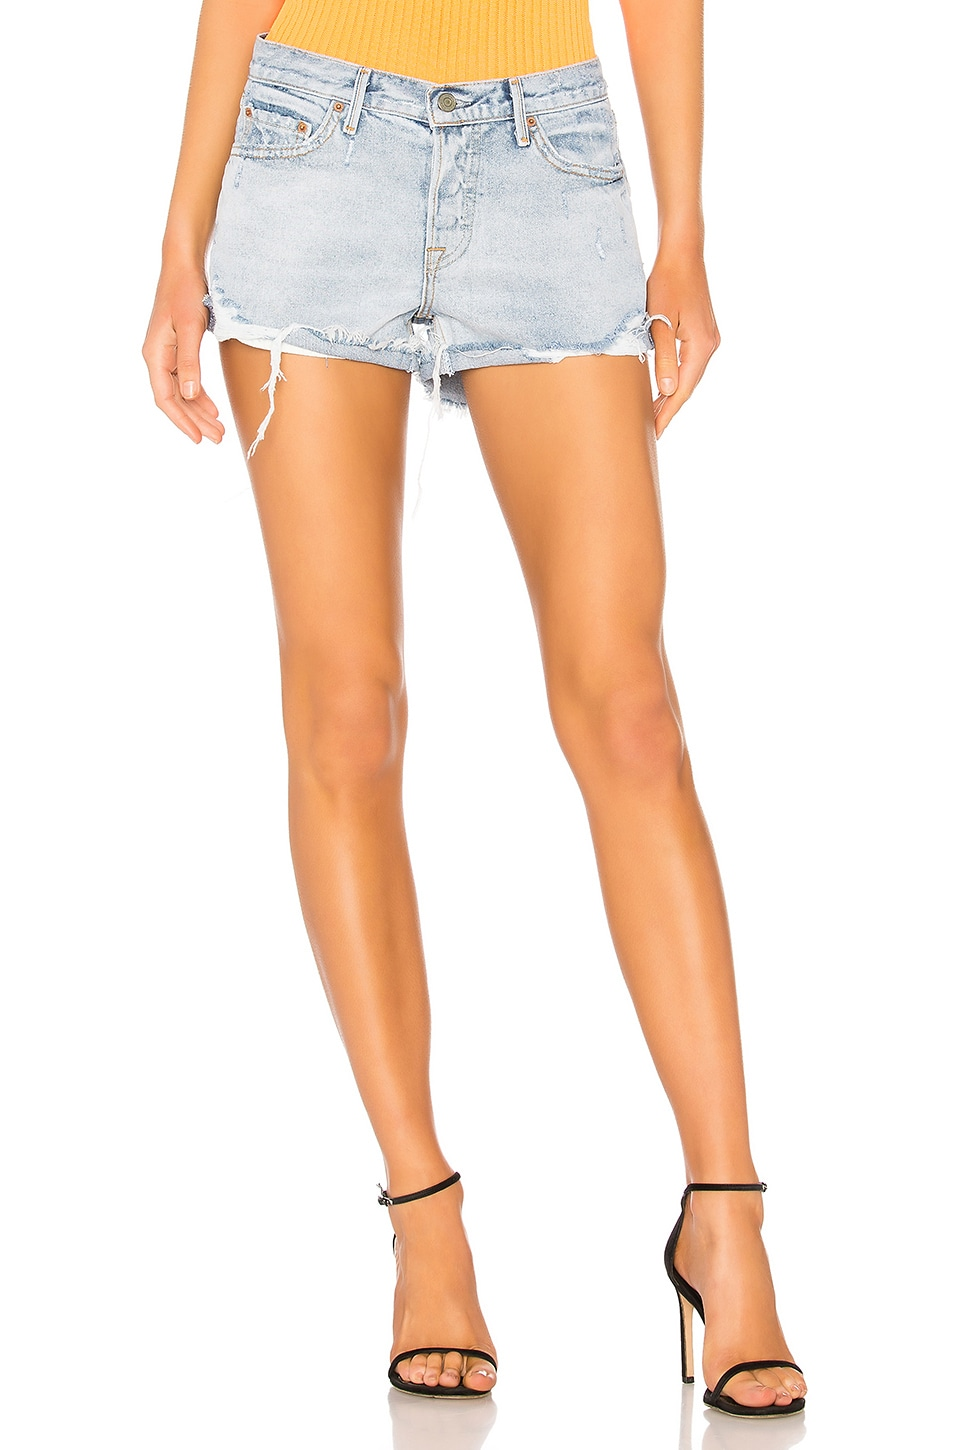 GRLFRND Adriana Mid-Rise Slouchy Short in Overdone